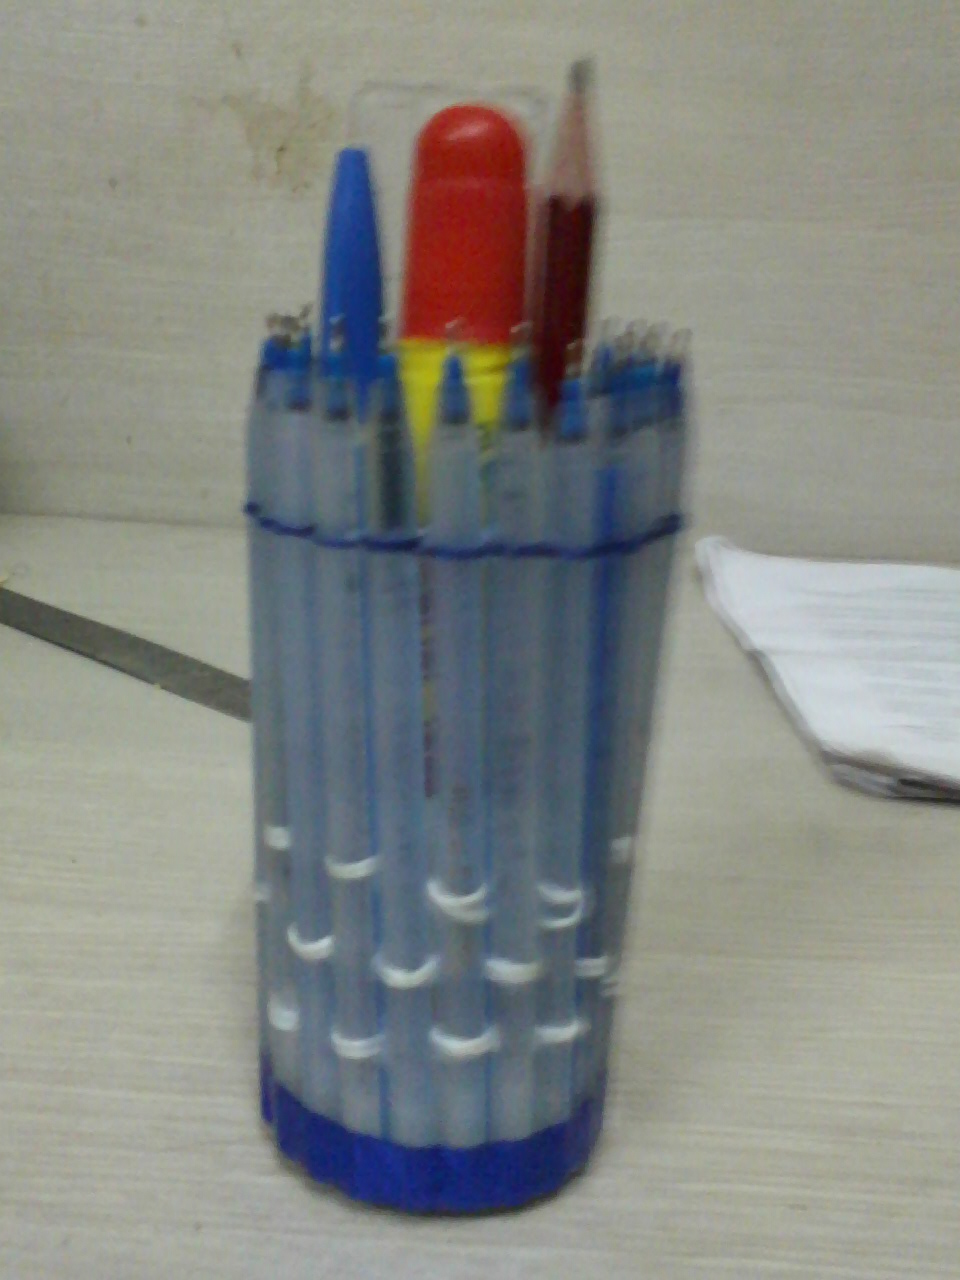 how to make pen stand from waste material